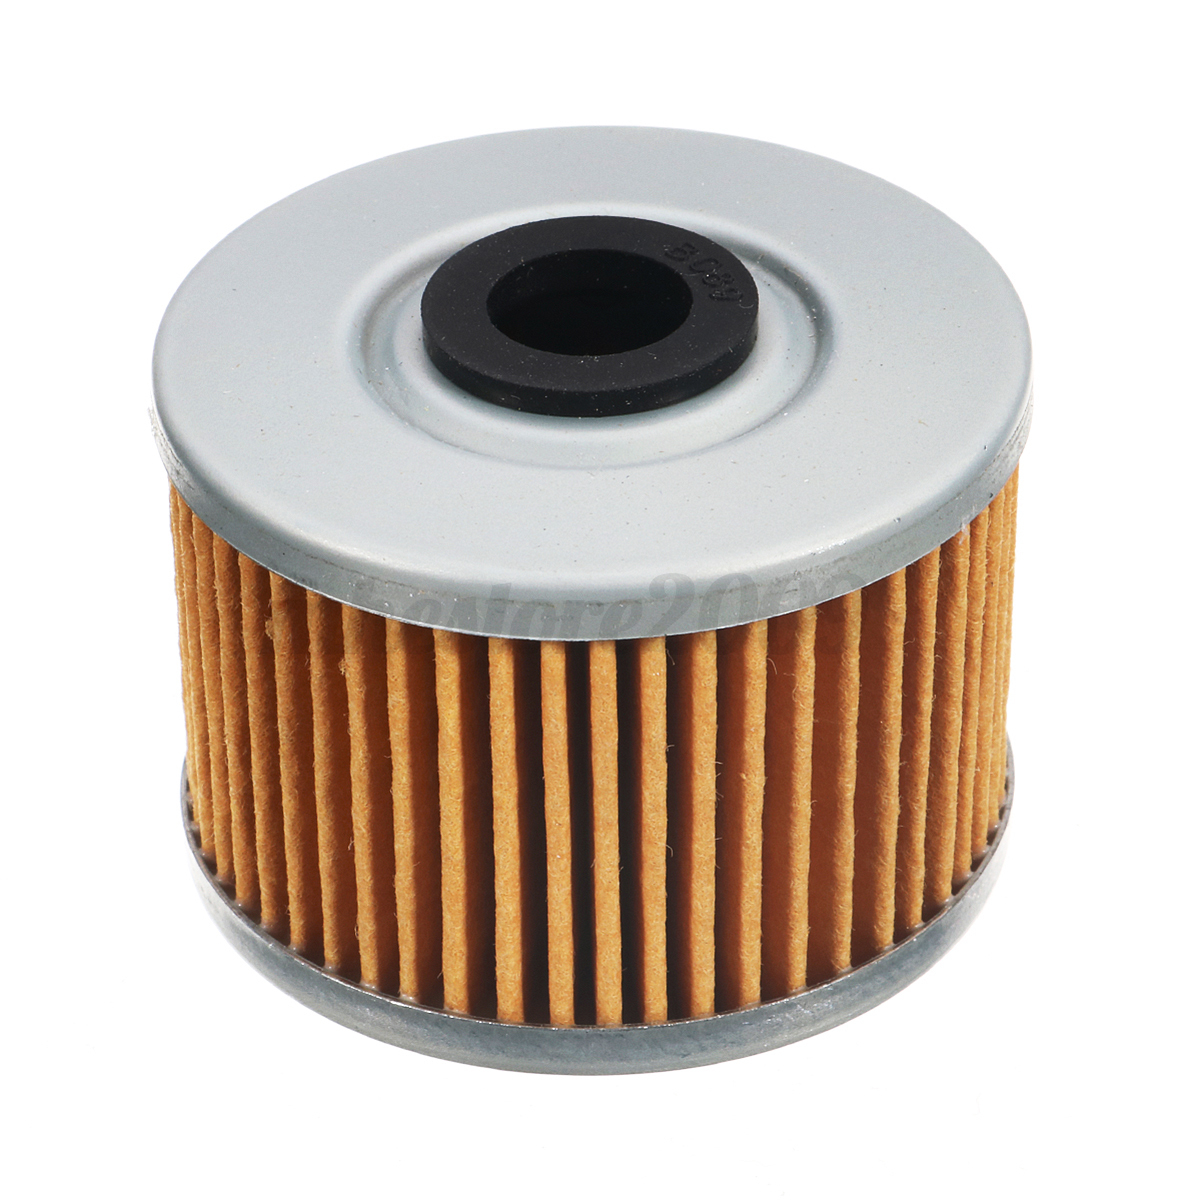 1 Pc Oil Filter For Honda Rancher 350 Trx300ex Trx400ex